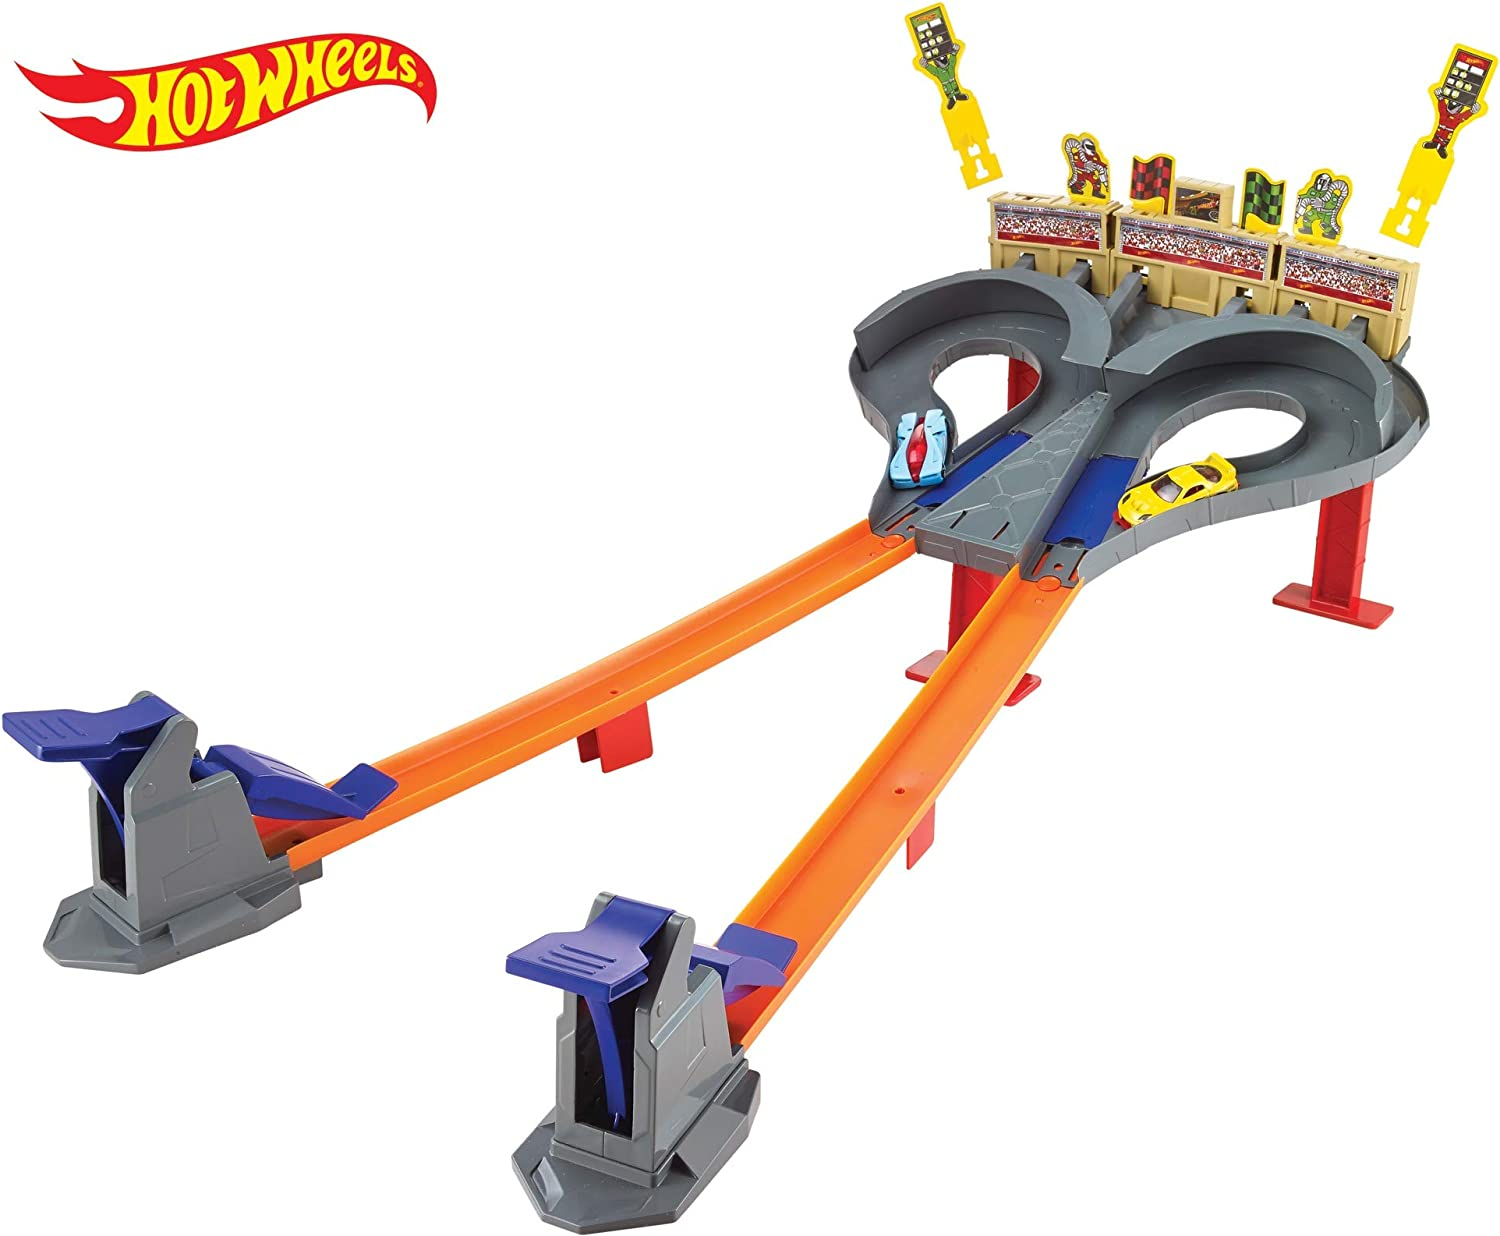 Hot Wheels - Pista dúo de carreras, pistas de coches de juguete ...